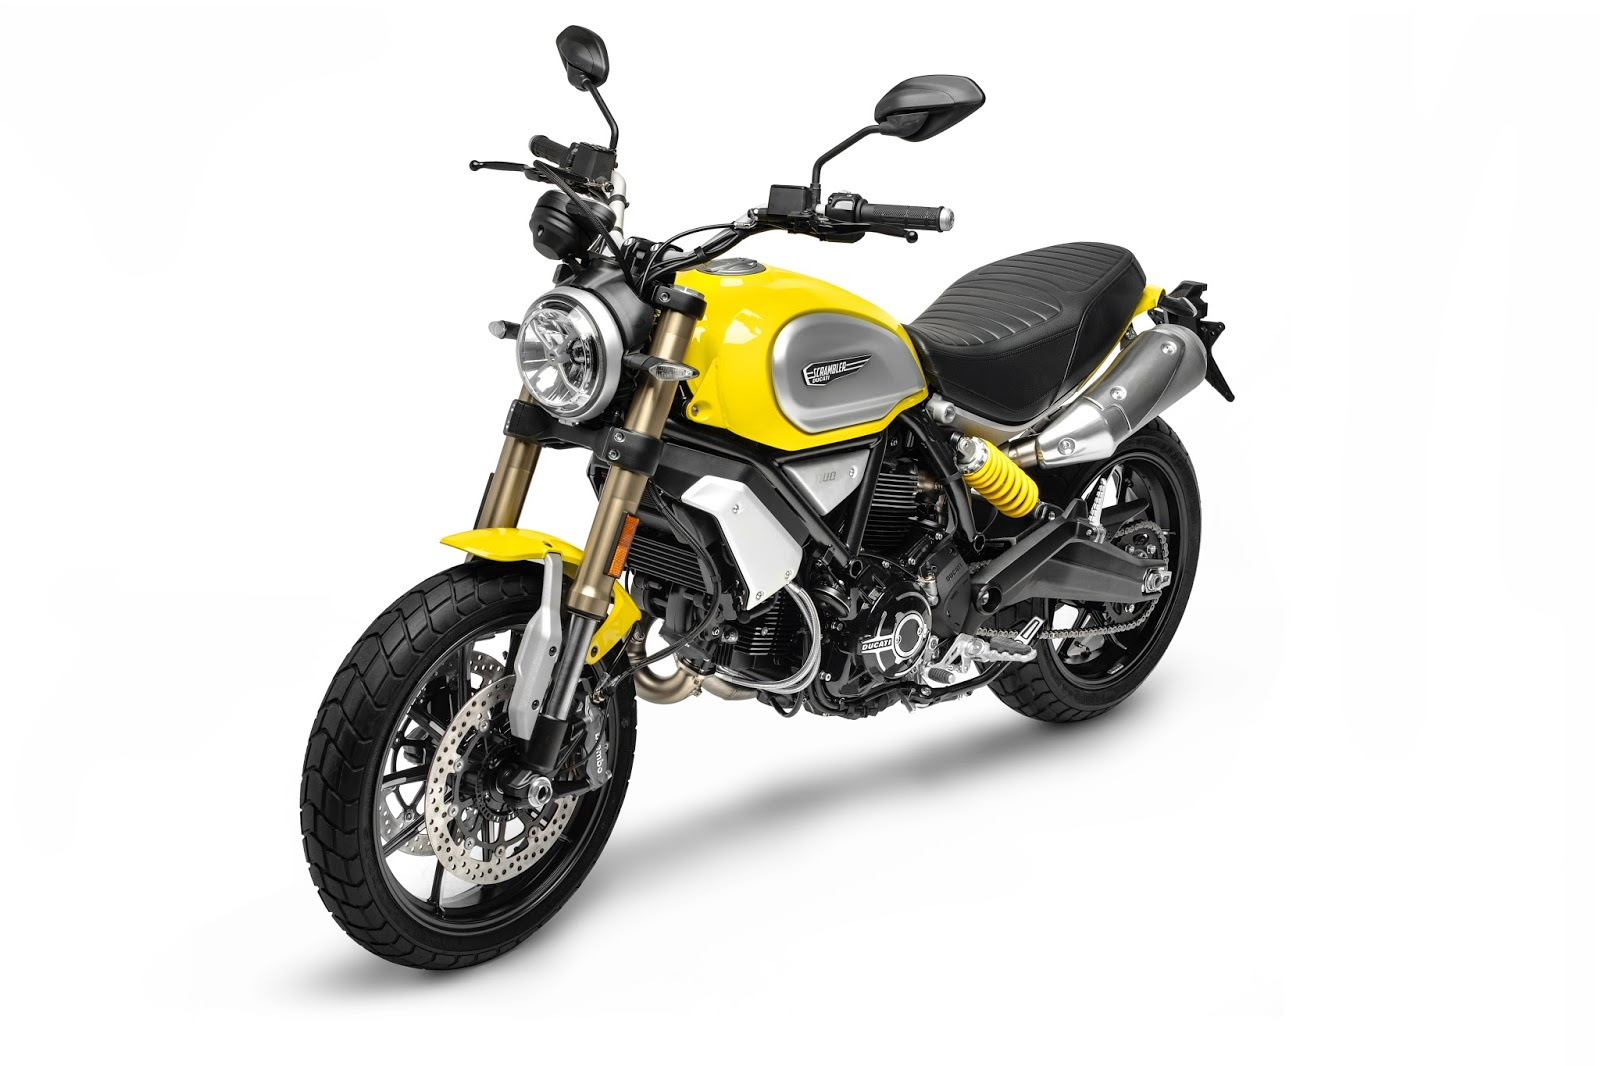 racing caf ducati scrambler 1100 2018. Black Bedroom Furniture Sets. Home Design Ideas